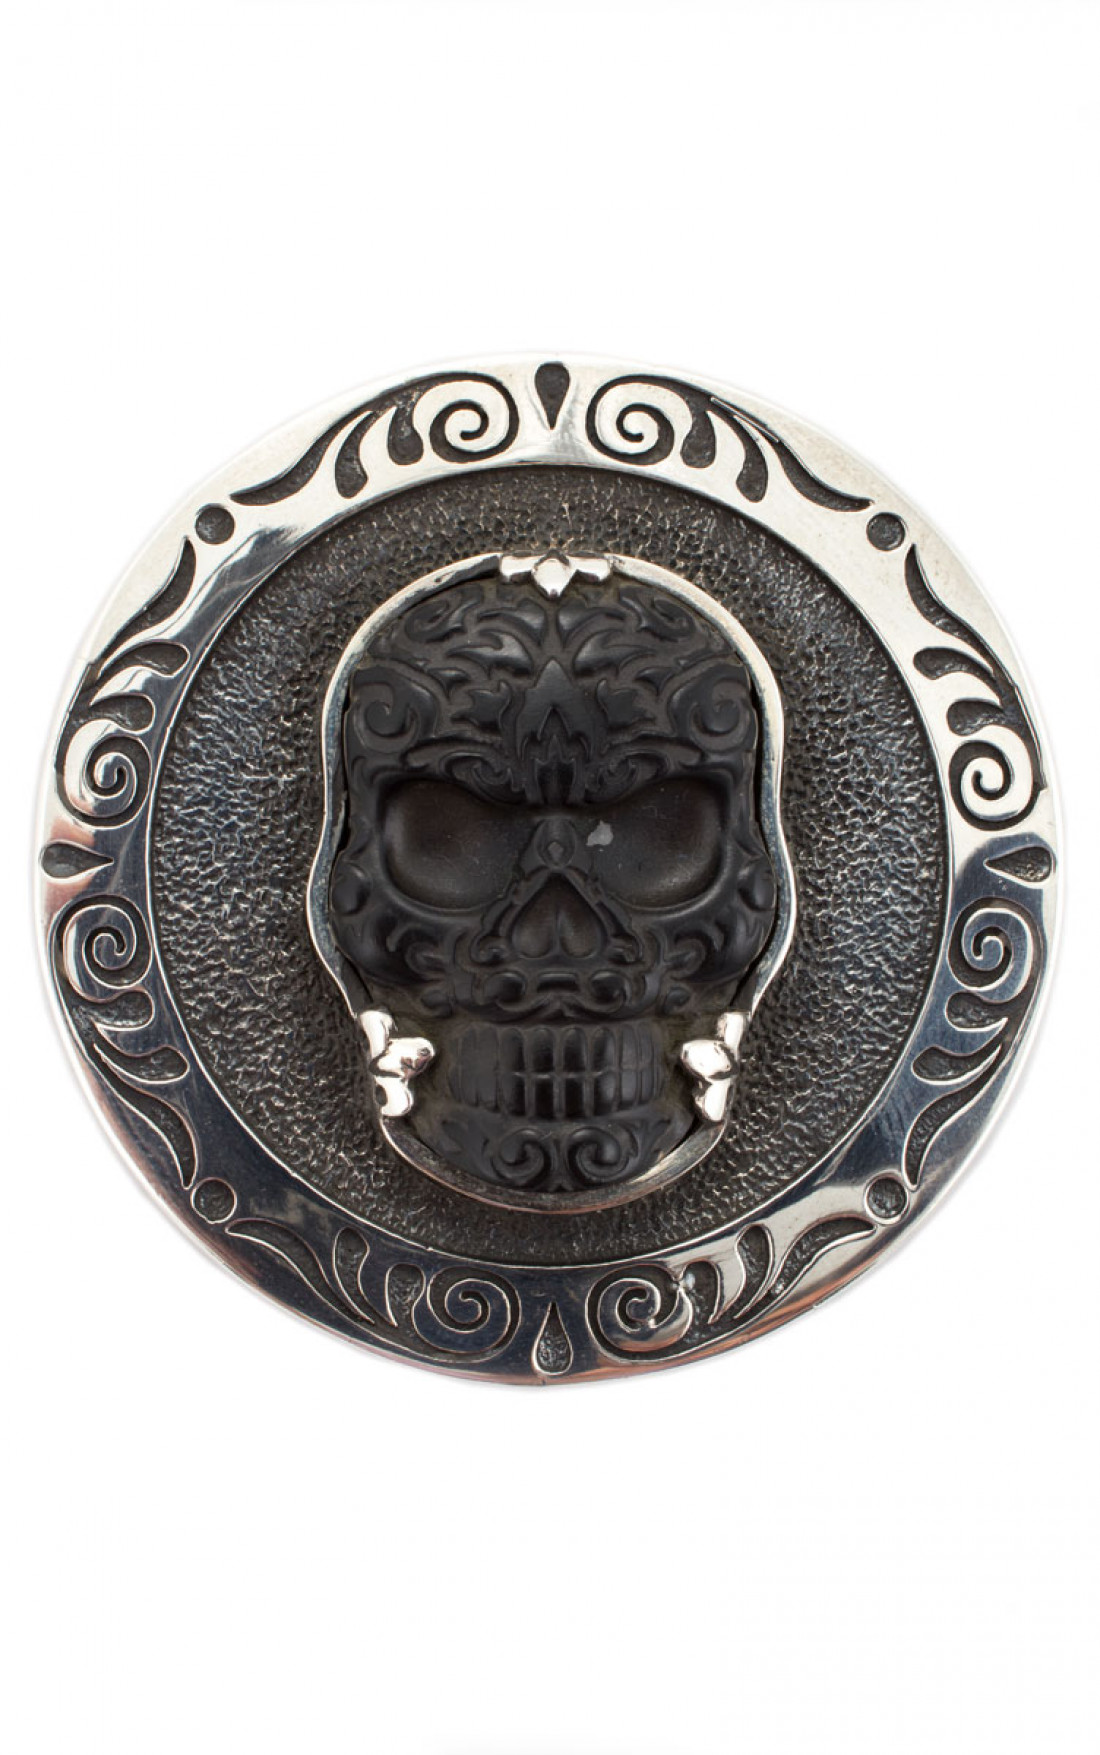 King Baby - Stash Box with Jet Baroque Skull Lid (A90-6003)